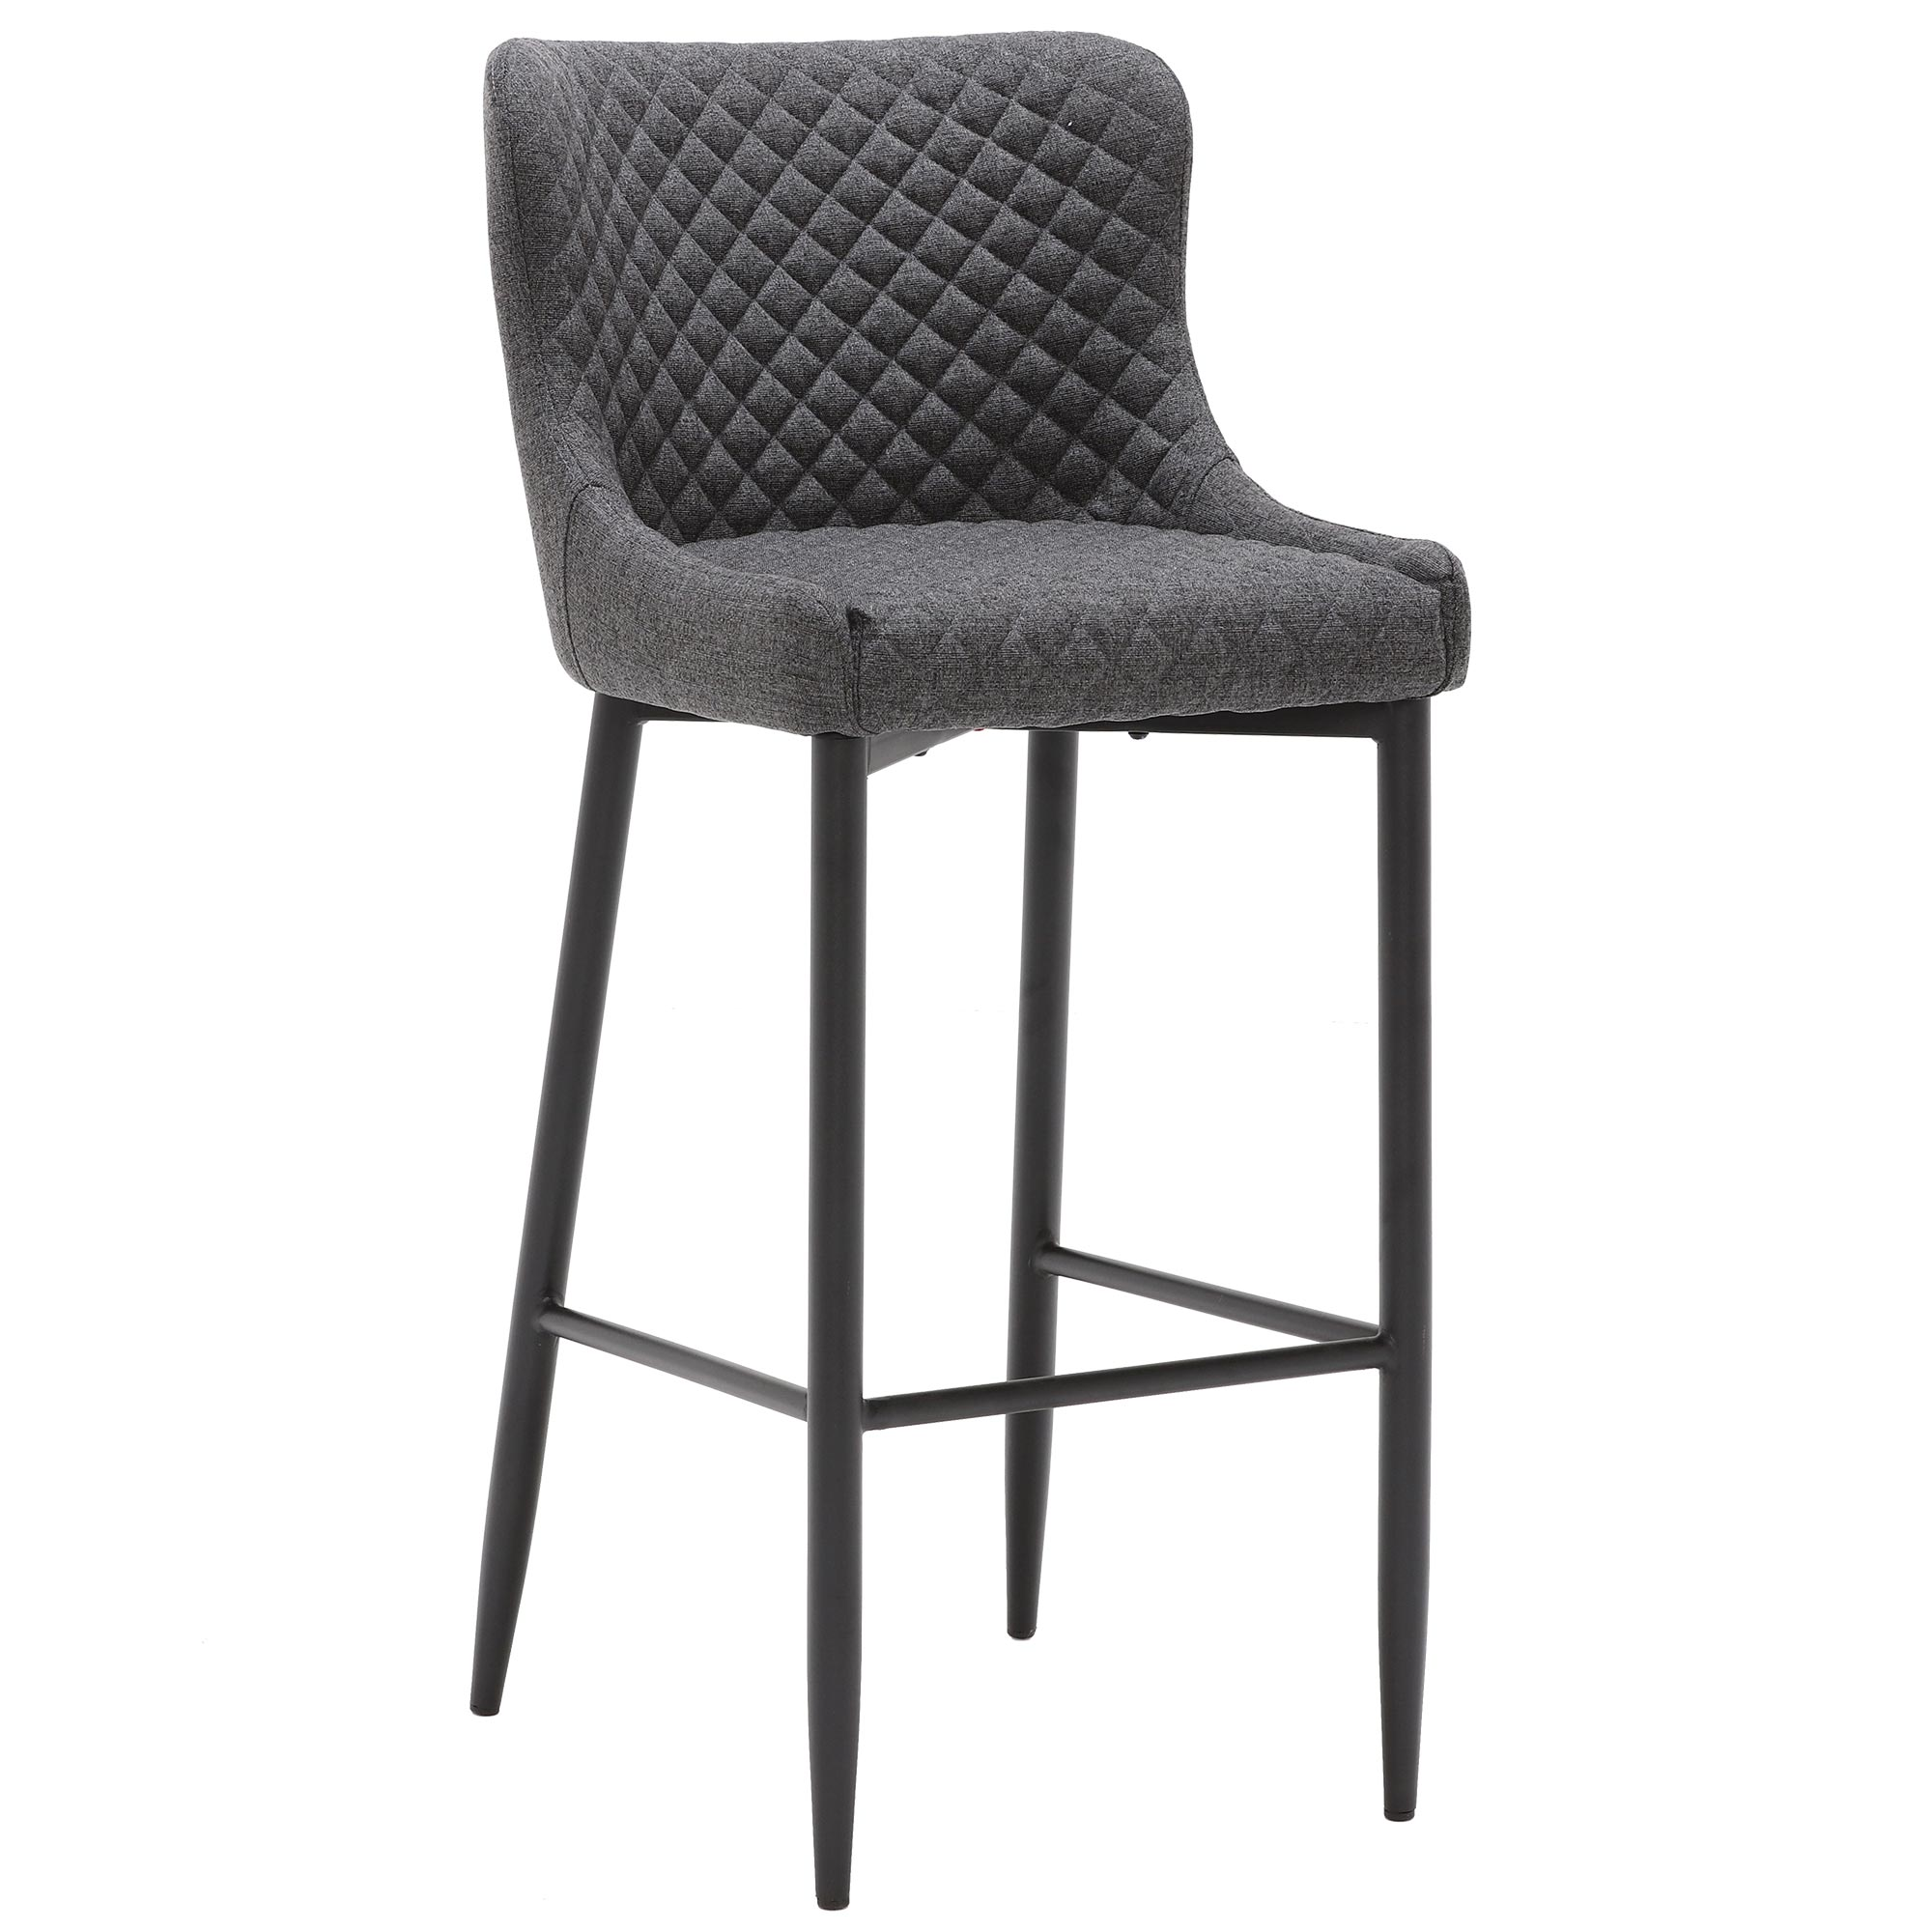 contemporary design dark gray fabric upholstered bar stool